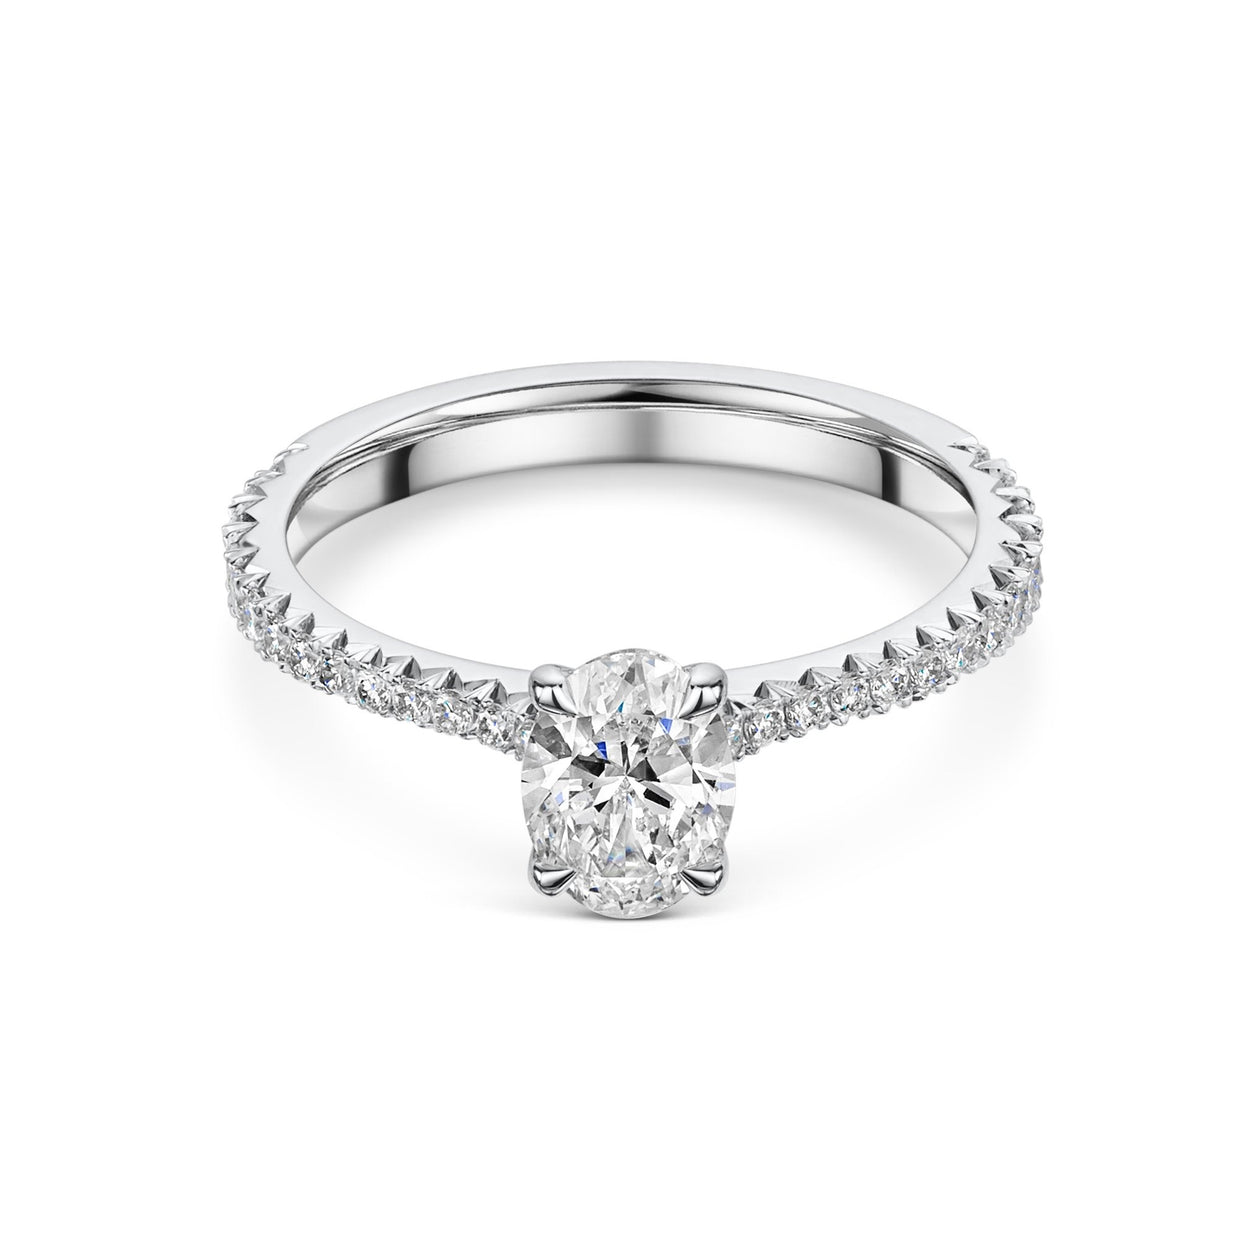 Oval Cut Solitaire Engagement Ring with Diamond Shoulders-Hamilton & Inches